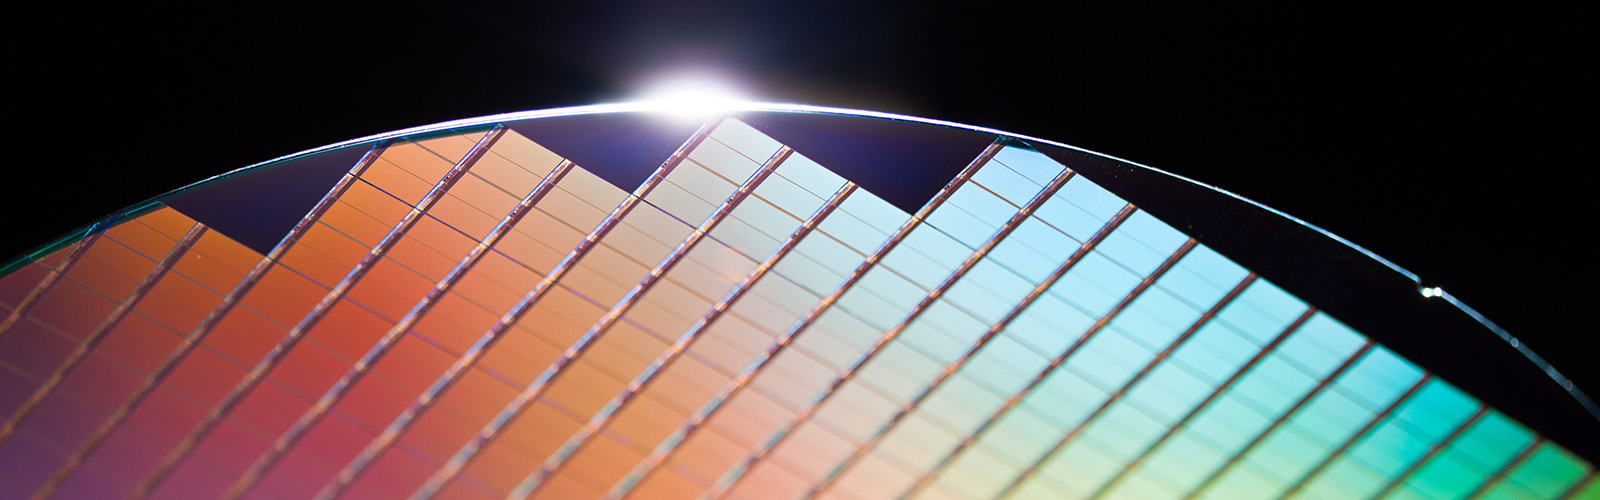 Abstract image of a multi-colored chip wafer